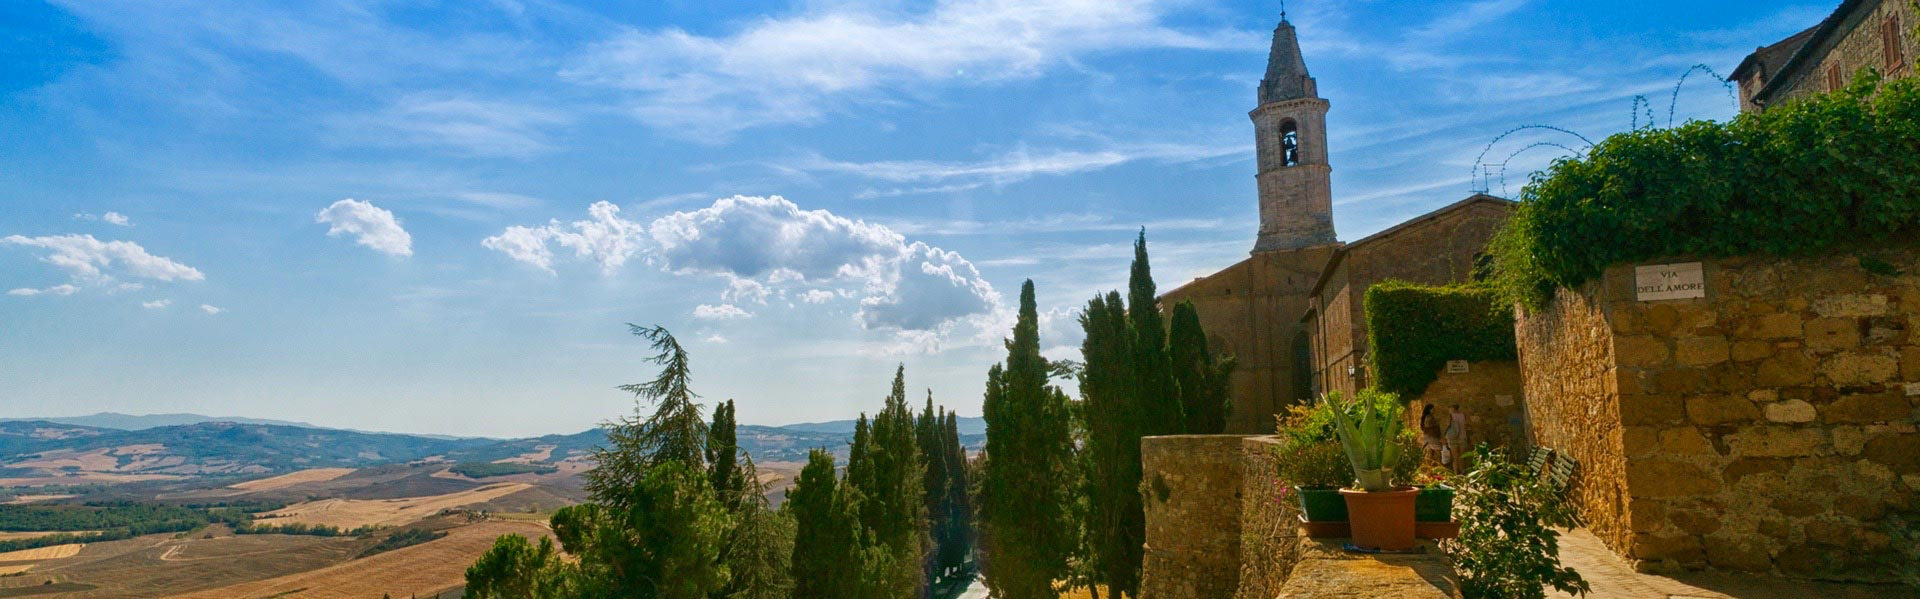 pienza-weddings6881